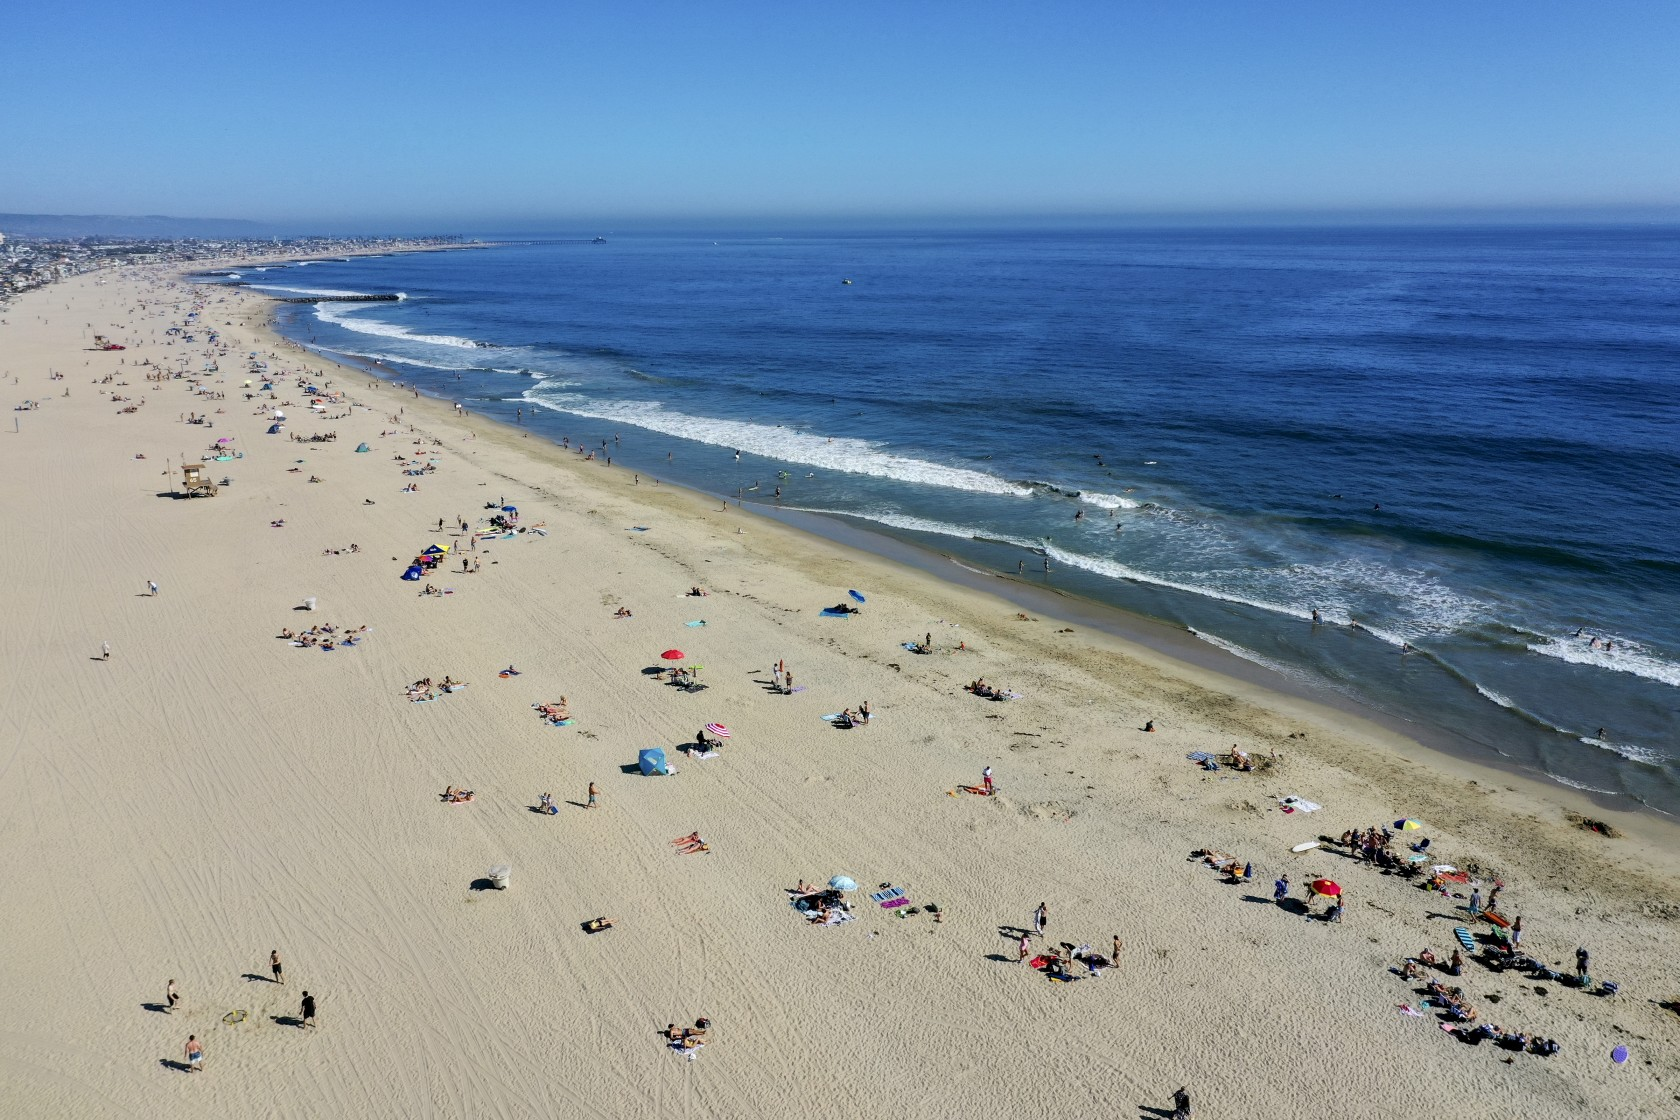 California to shut down certain beaches to prevent spread of virus